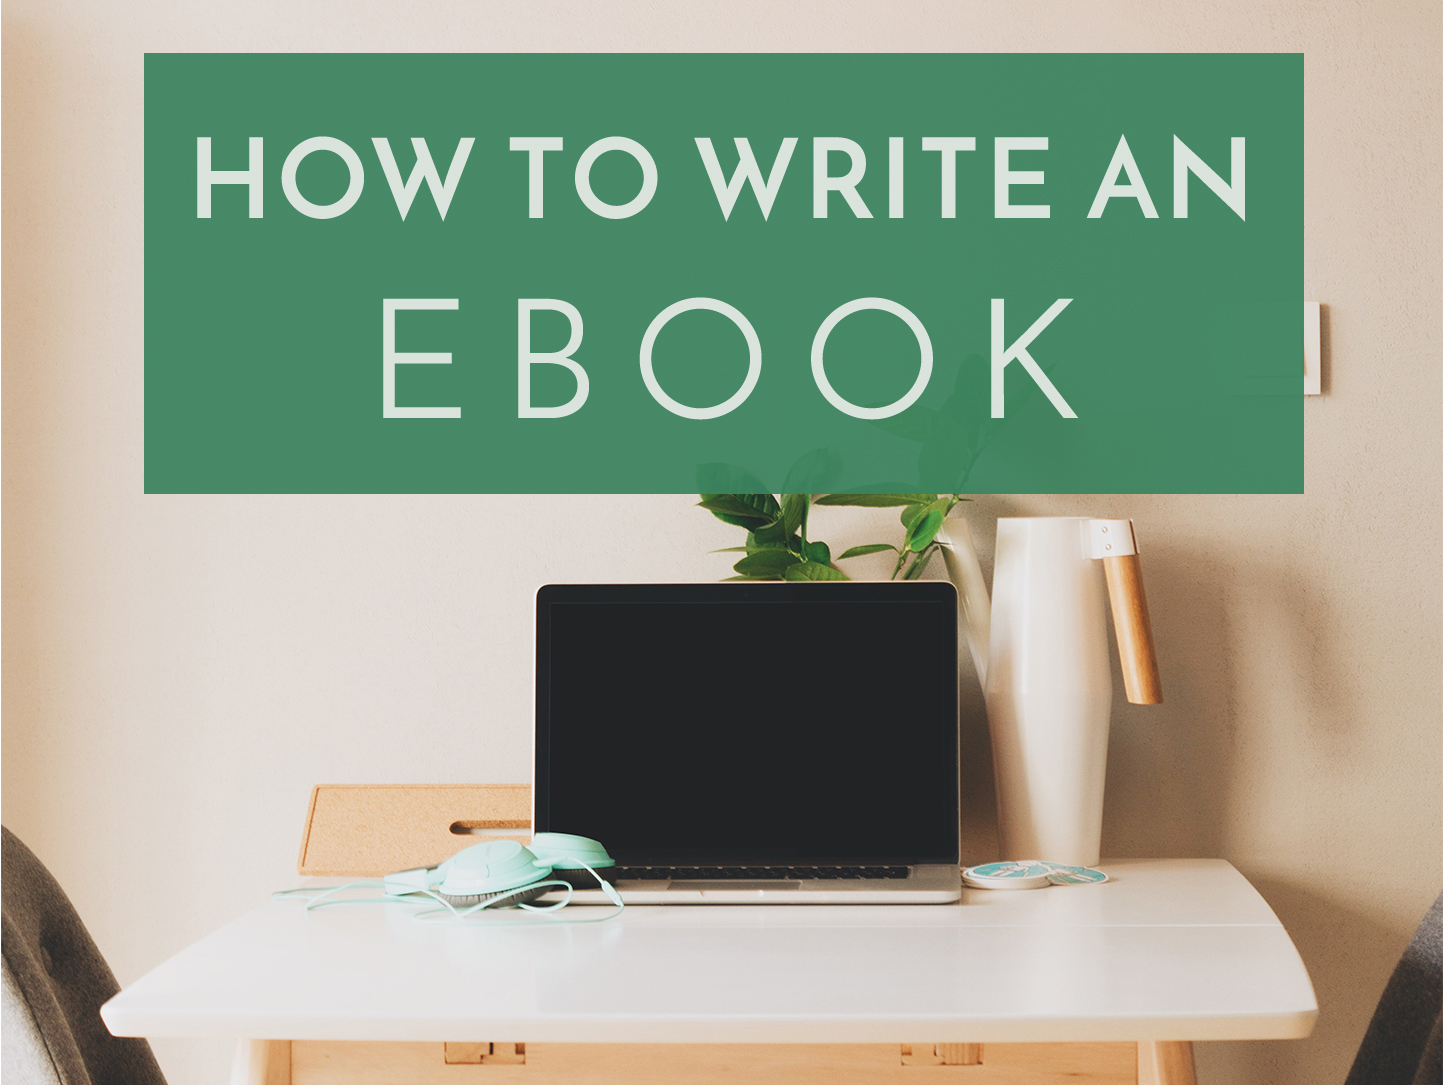 How to write a ebook